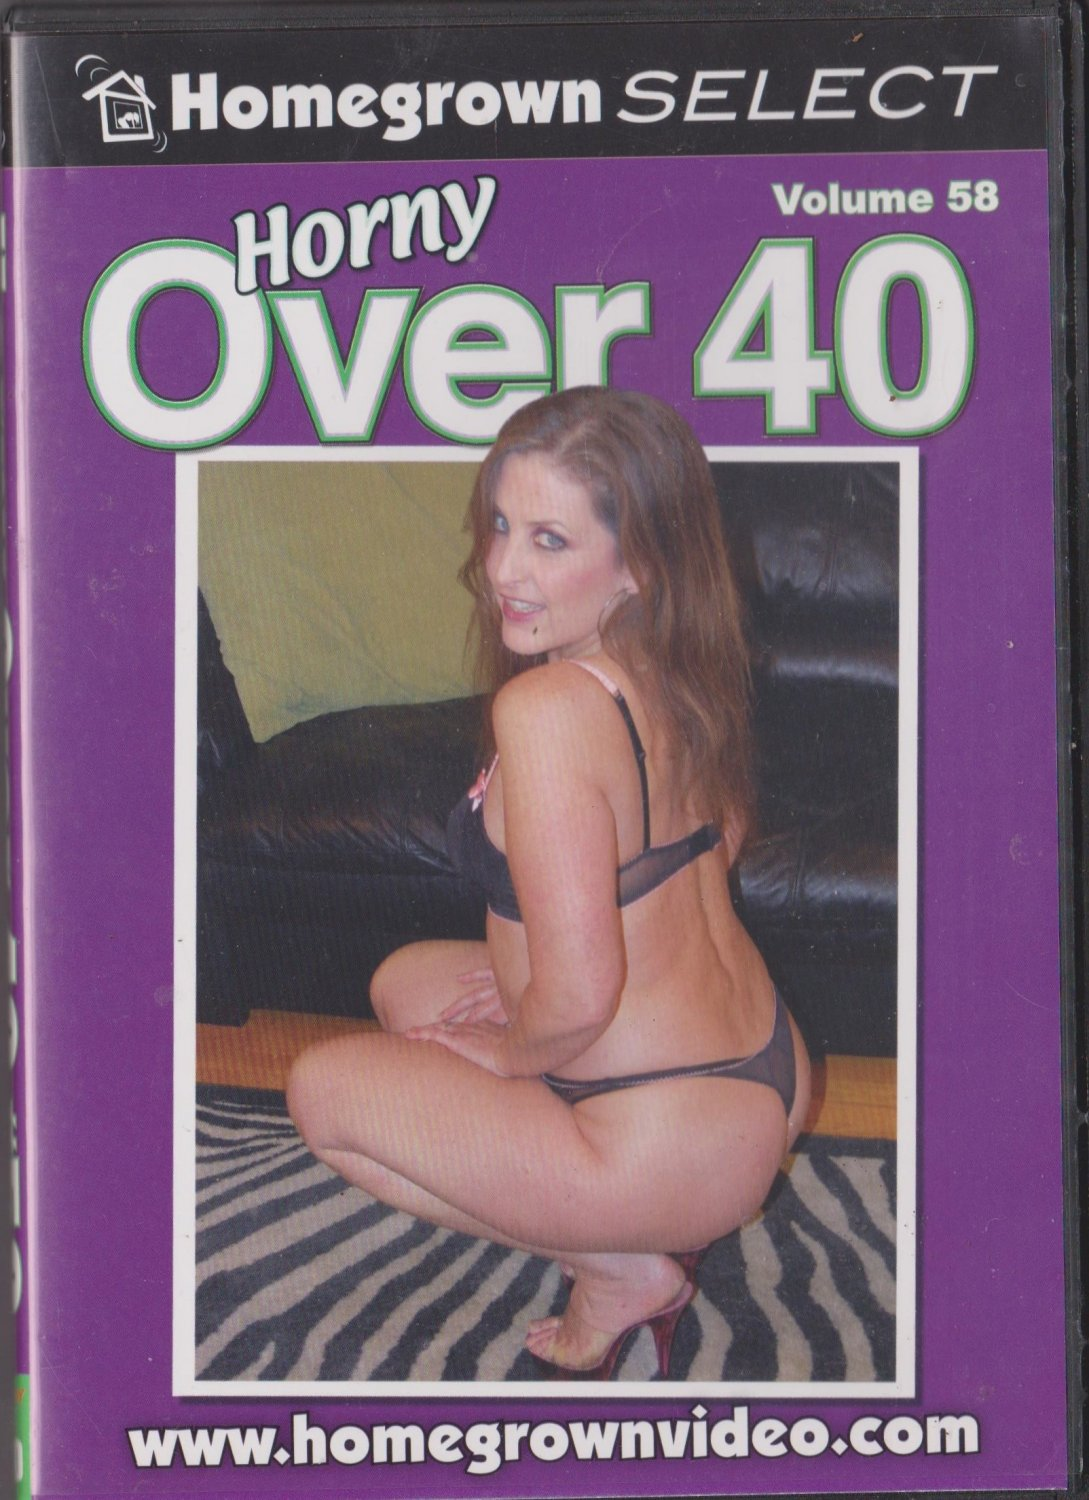 horny over 40 vol 58 (adult dvd - xxx) homegrown select 4 scenes